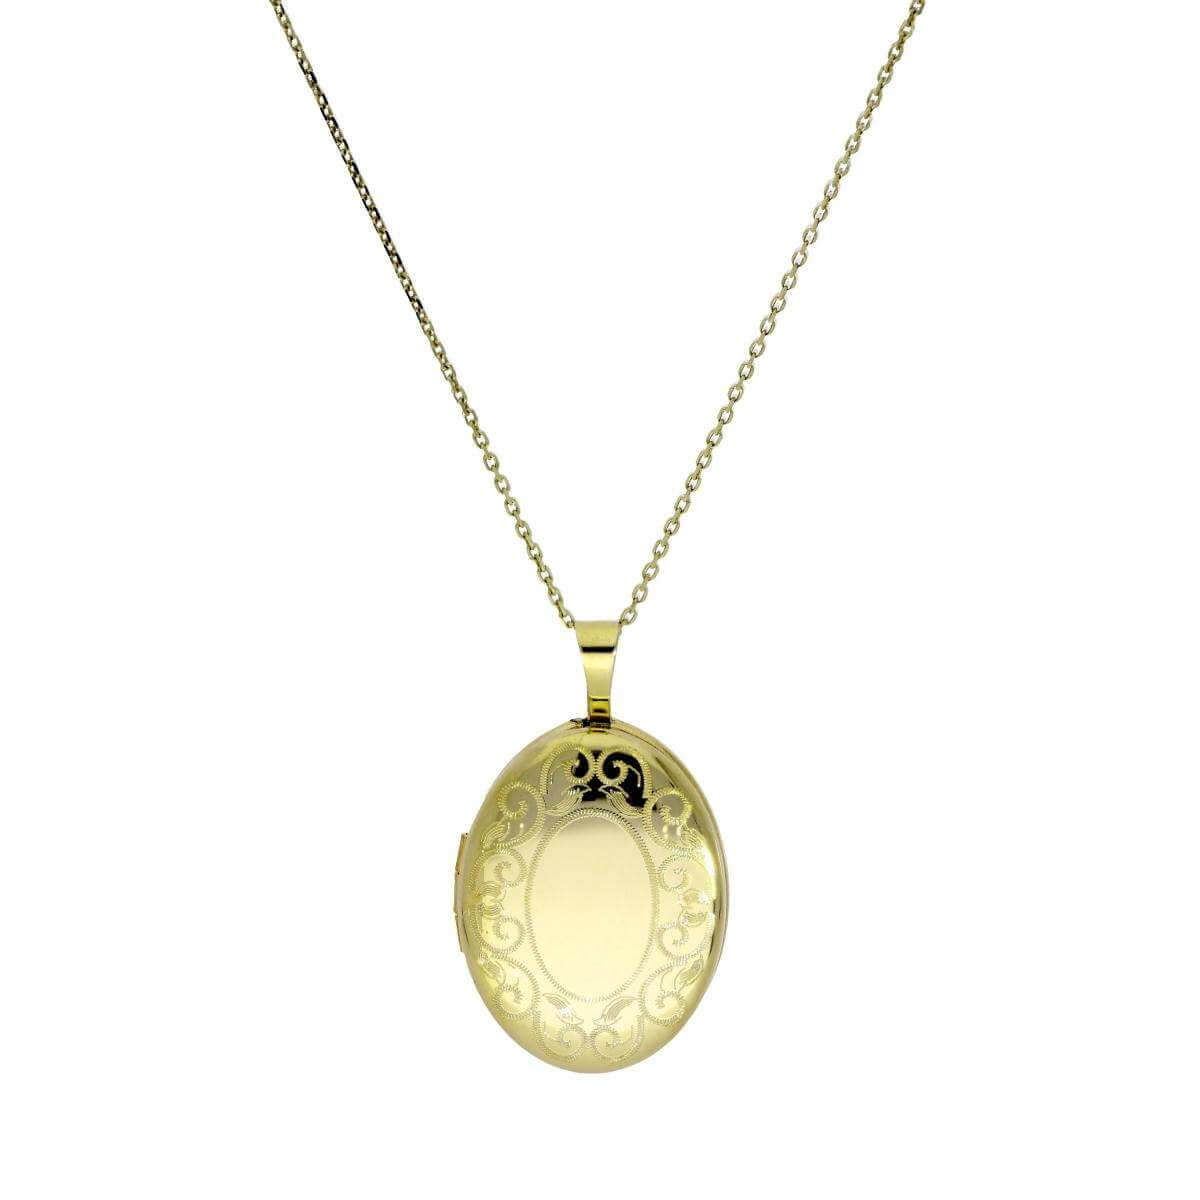 9ct Gold Engravable Oval Locket with Filigree Border on Chain 16 - 20 Inches